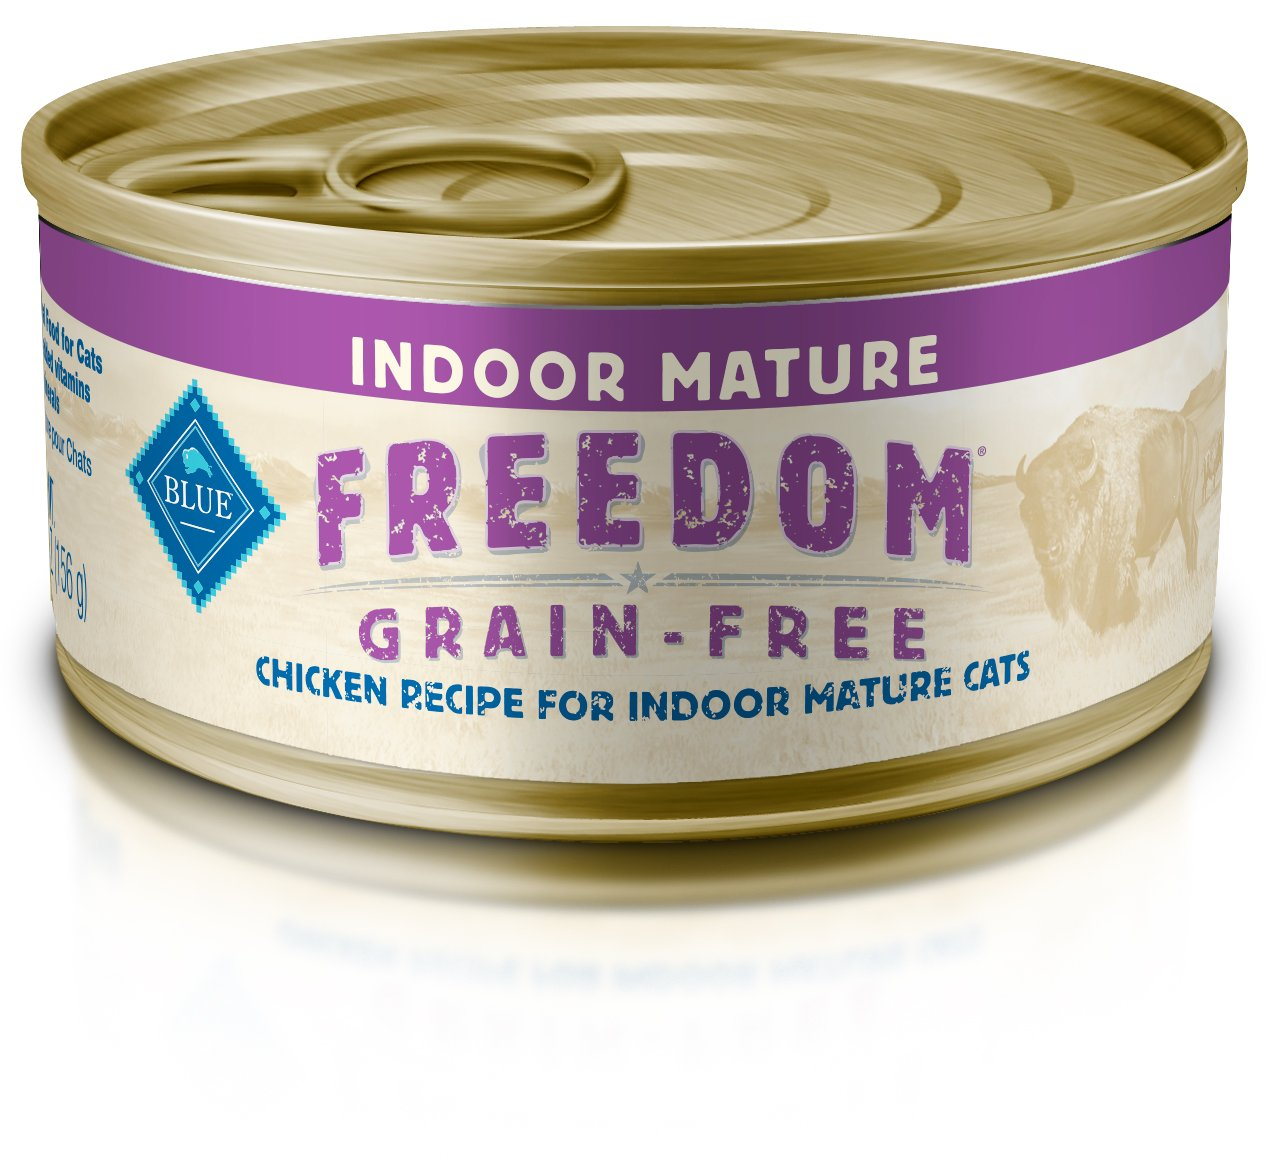 Blue Freedom Mature Pate Indoor Grain Free Chicken Wet Cat Food 5.5-Oz (Pack Of 24) by Freedom by Blue Buffalo